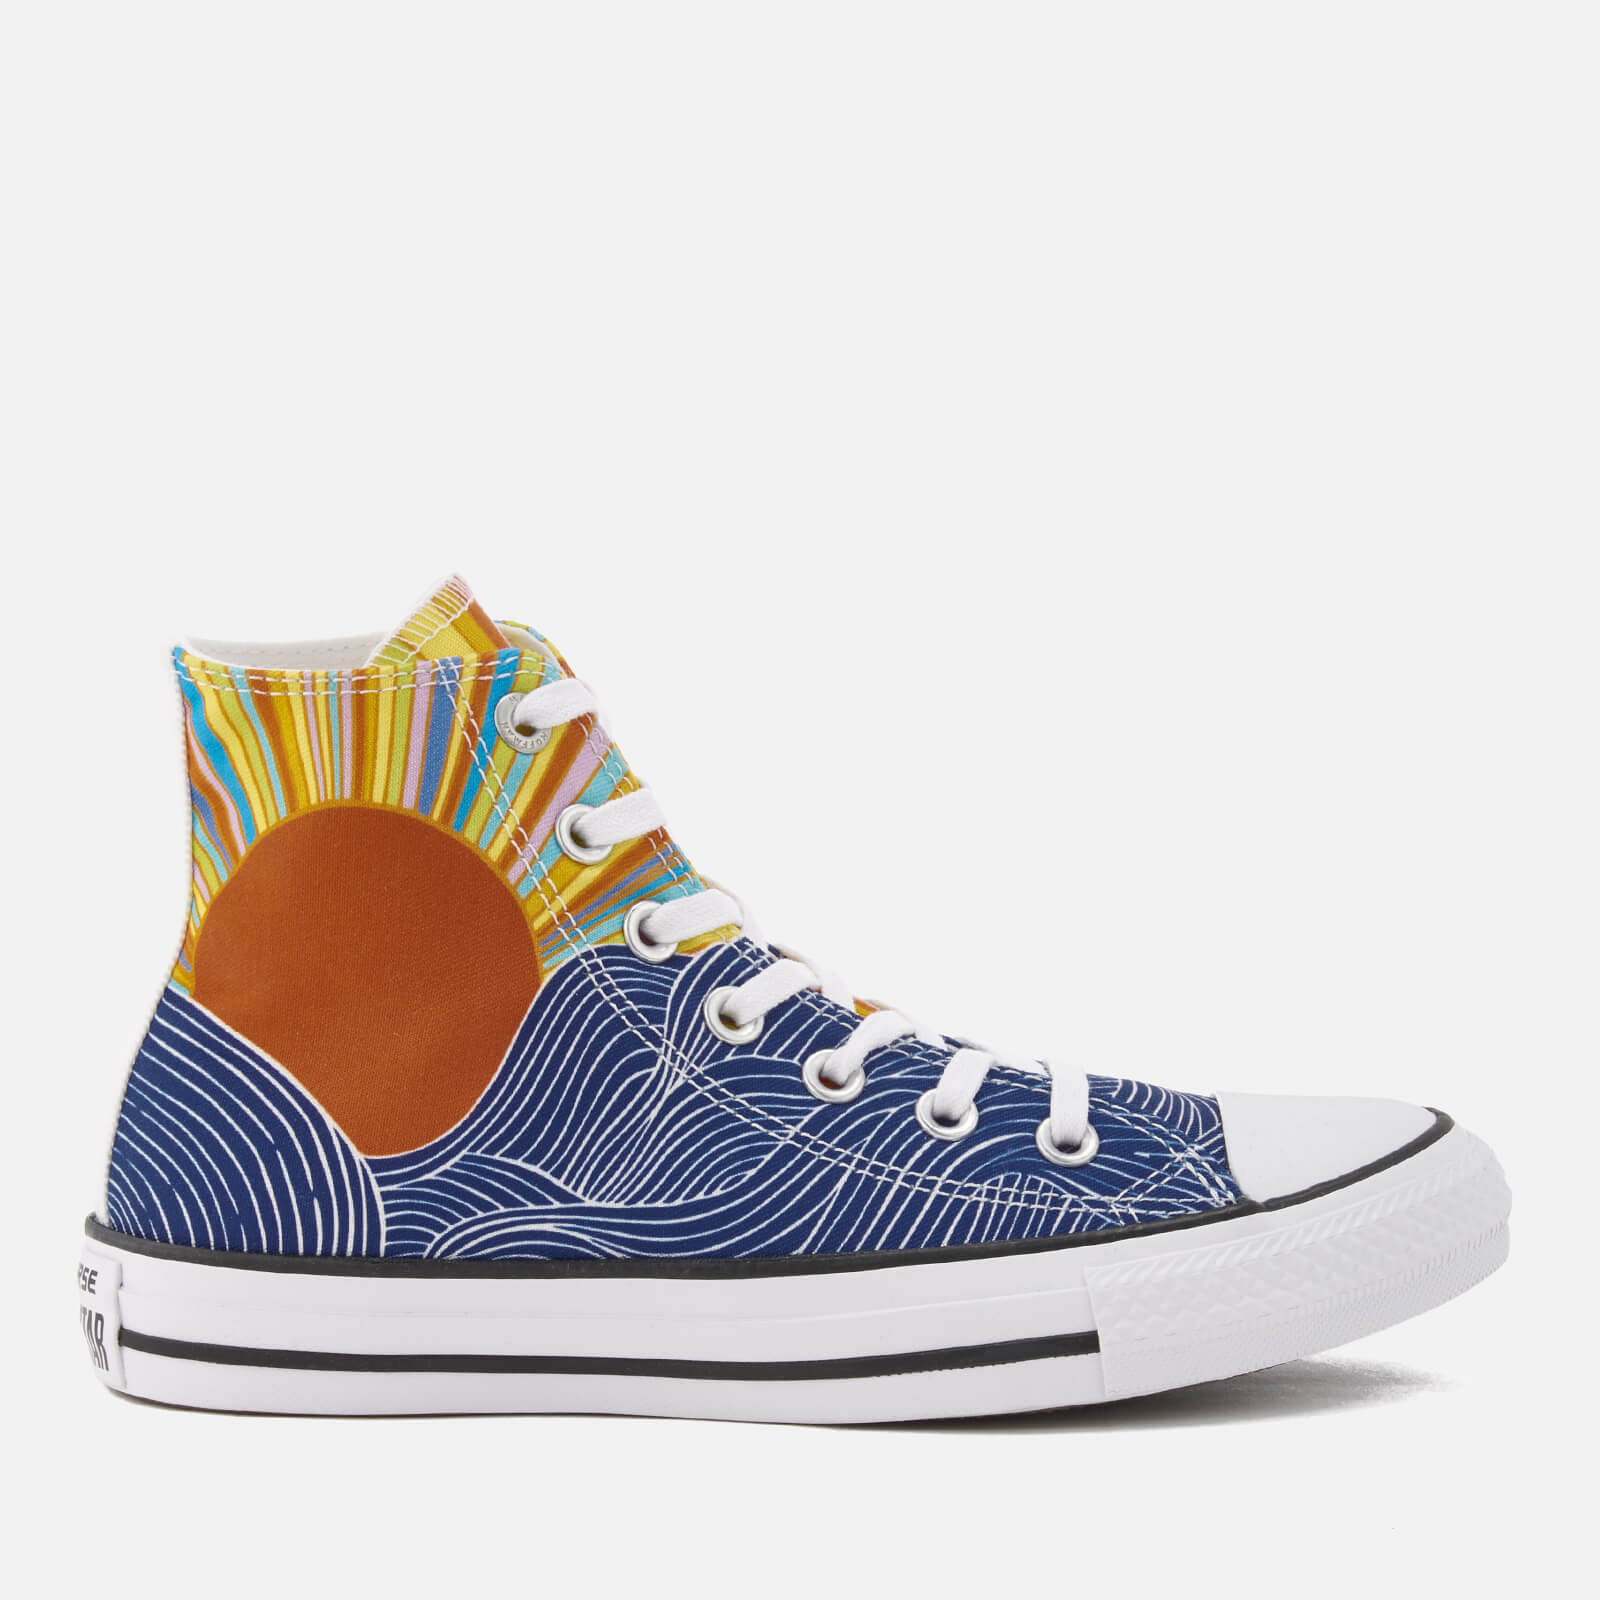 b41d995483f3 Converse X Mara Hoffman Women s Chuck Taylor All Star Hi-Top Trainers -  Patriot Blue Pink White - Free UK Delivery over £50